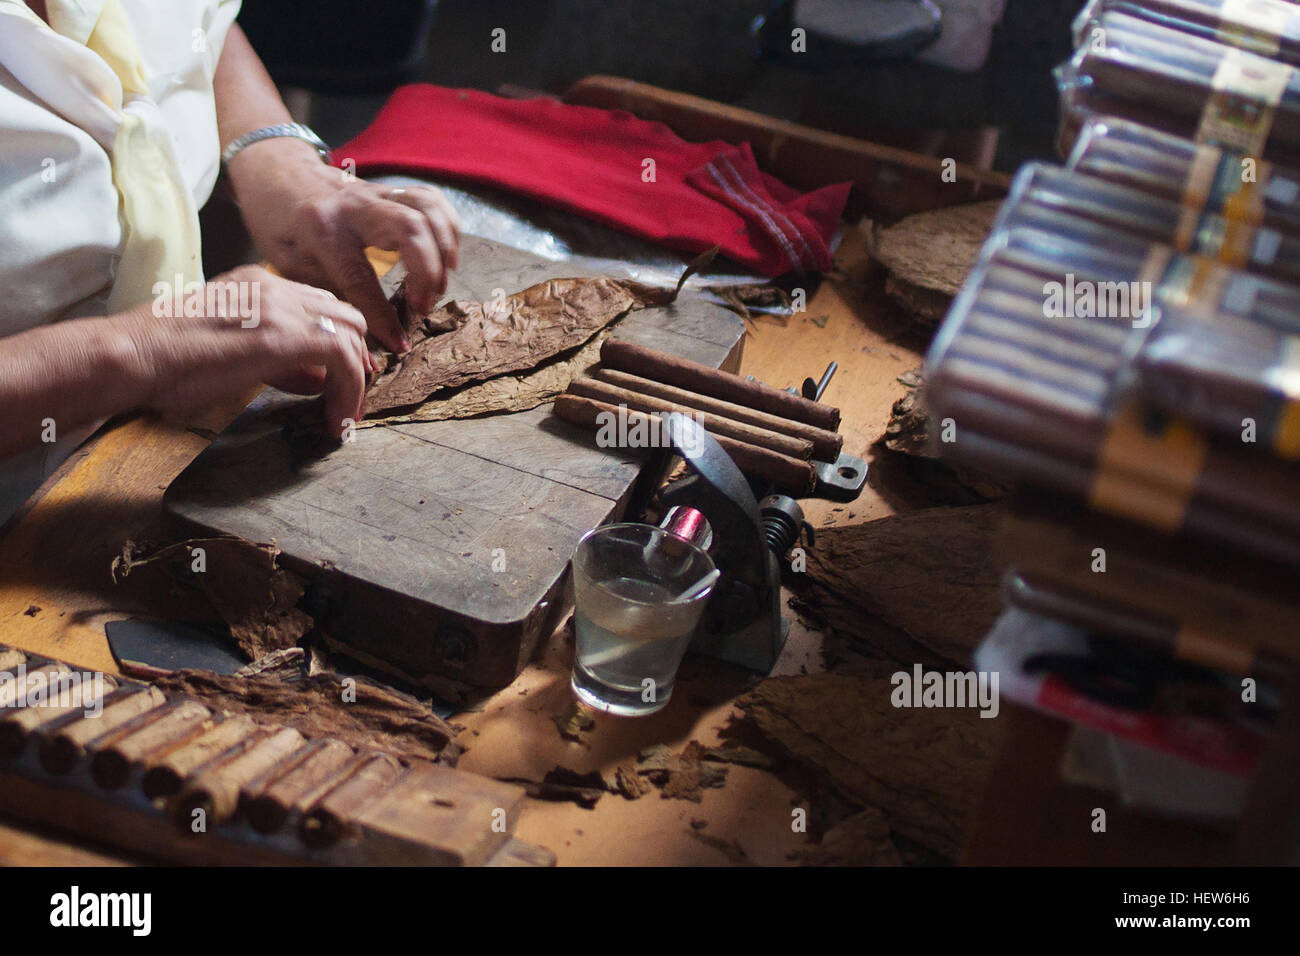 An elderly woman works on traditional manufacture of cigars at the cuban tobacco factory, Cuba Stock Photo